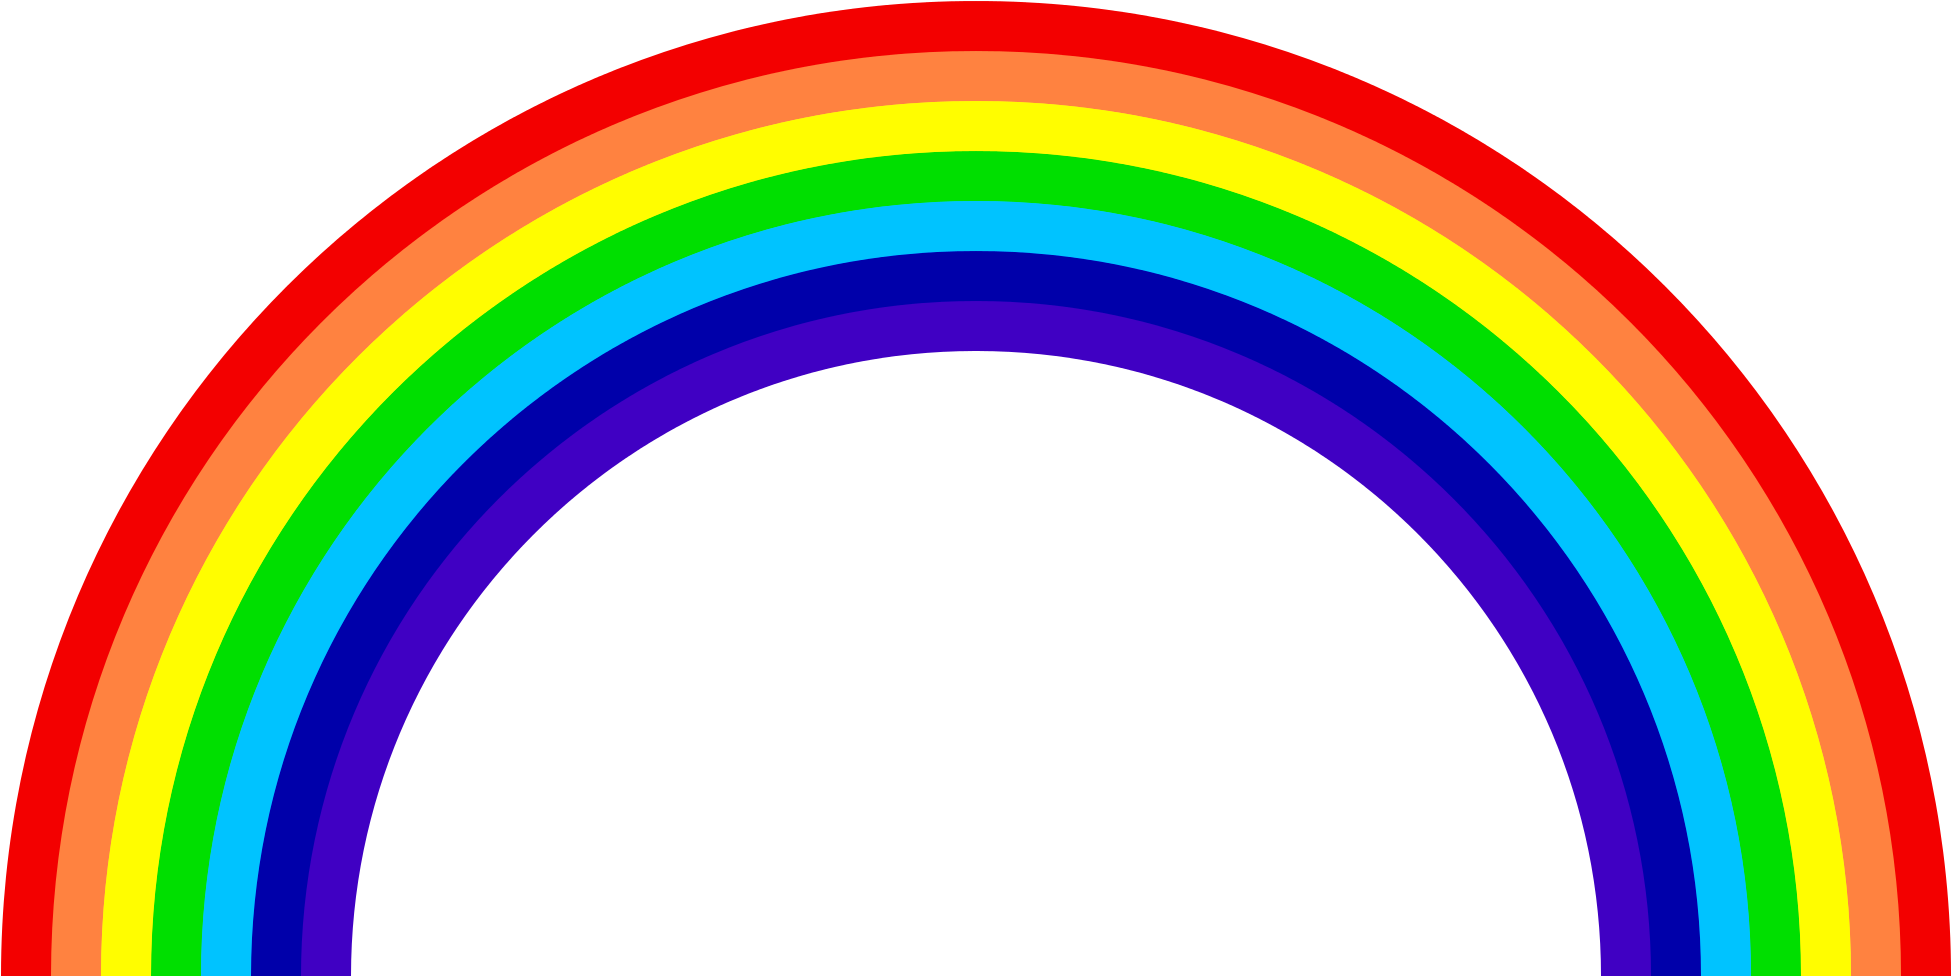 Rainbow Png Images Colors The Sky Png Only - Transparent Rainbow Png Clipart (2064x1026), Png Download